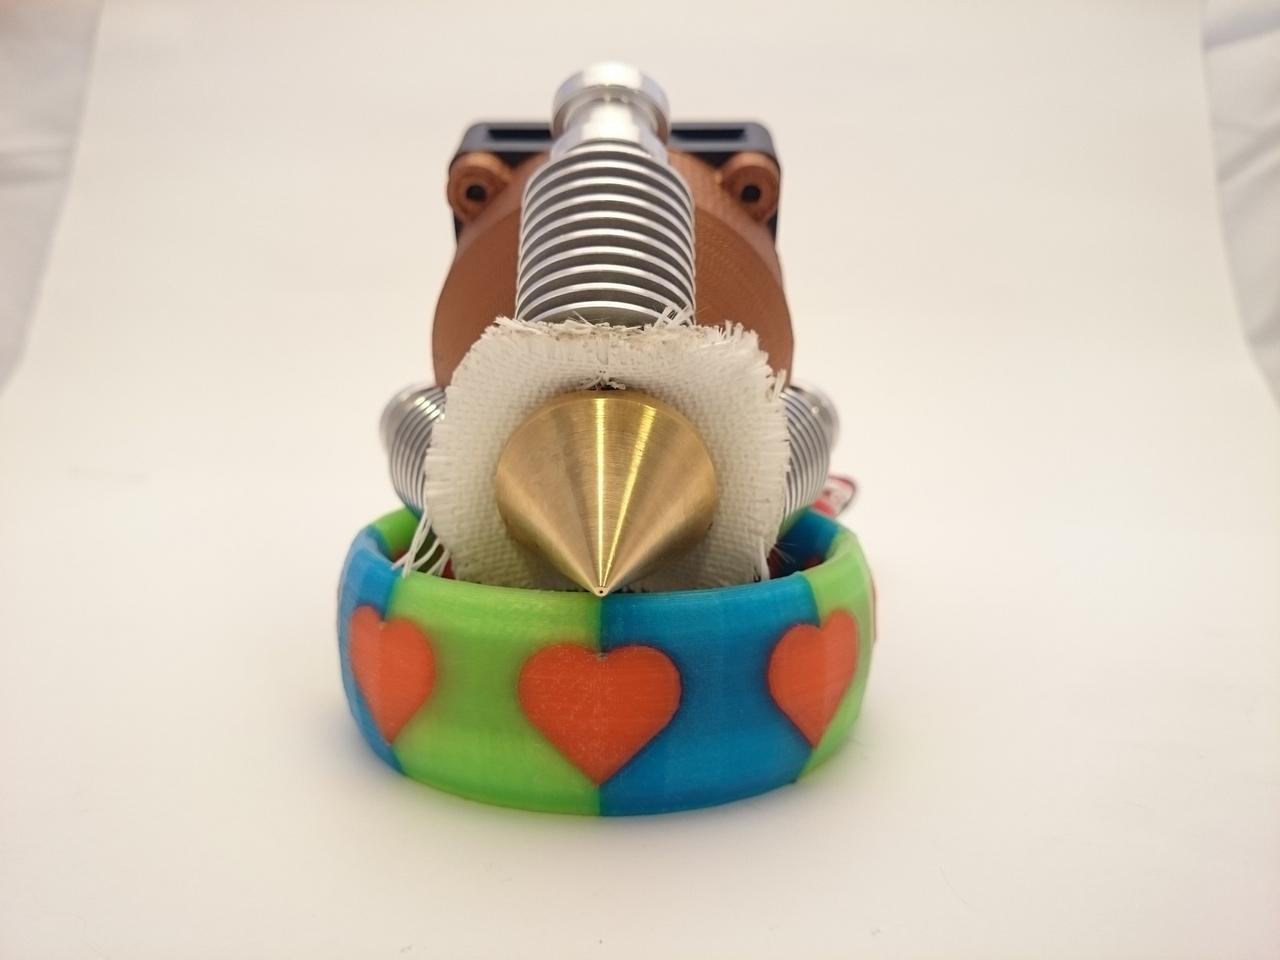 The Diamond Hotend is a color extruder for 3D printers that can accept and mix up to three colors of filaments